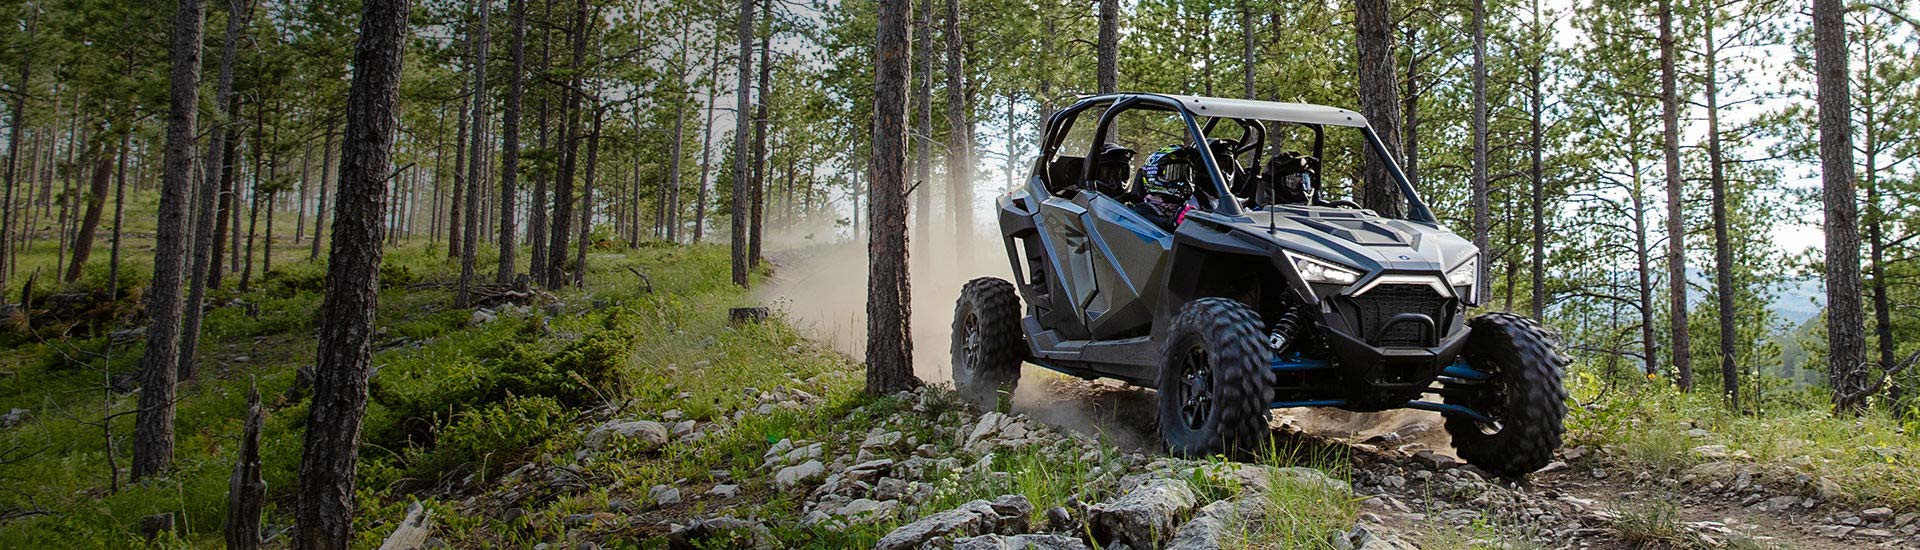 polaris-rzr-pro-xp-4-ultimate